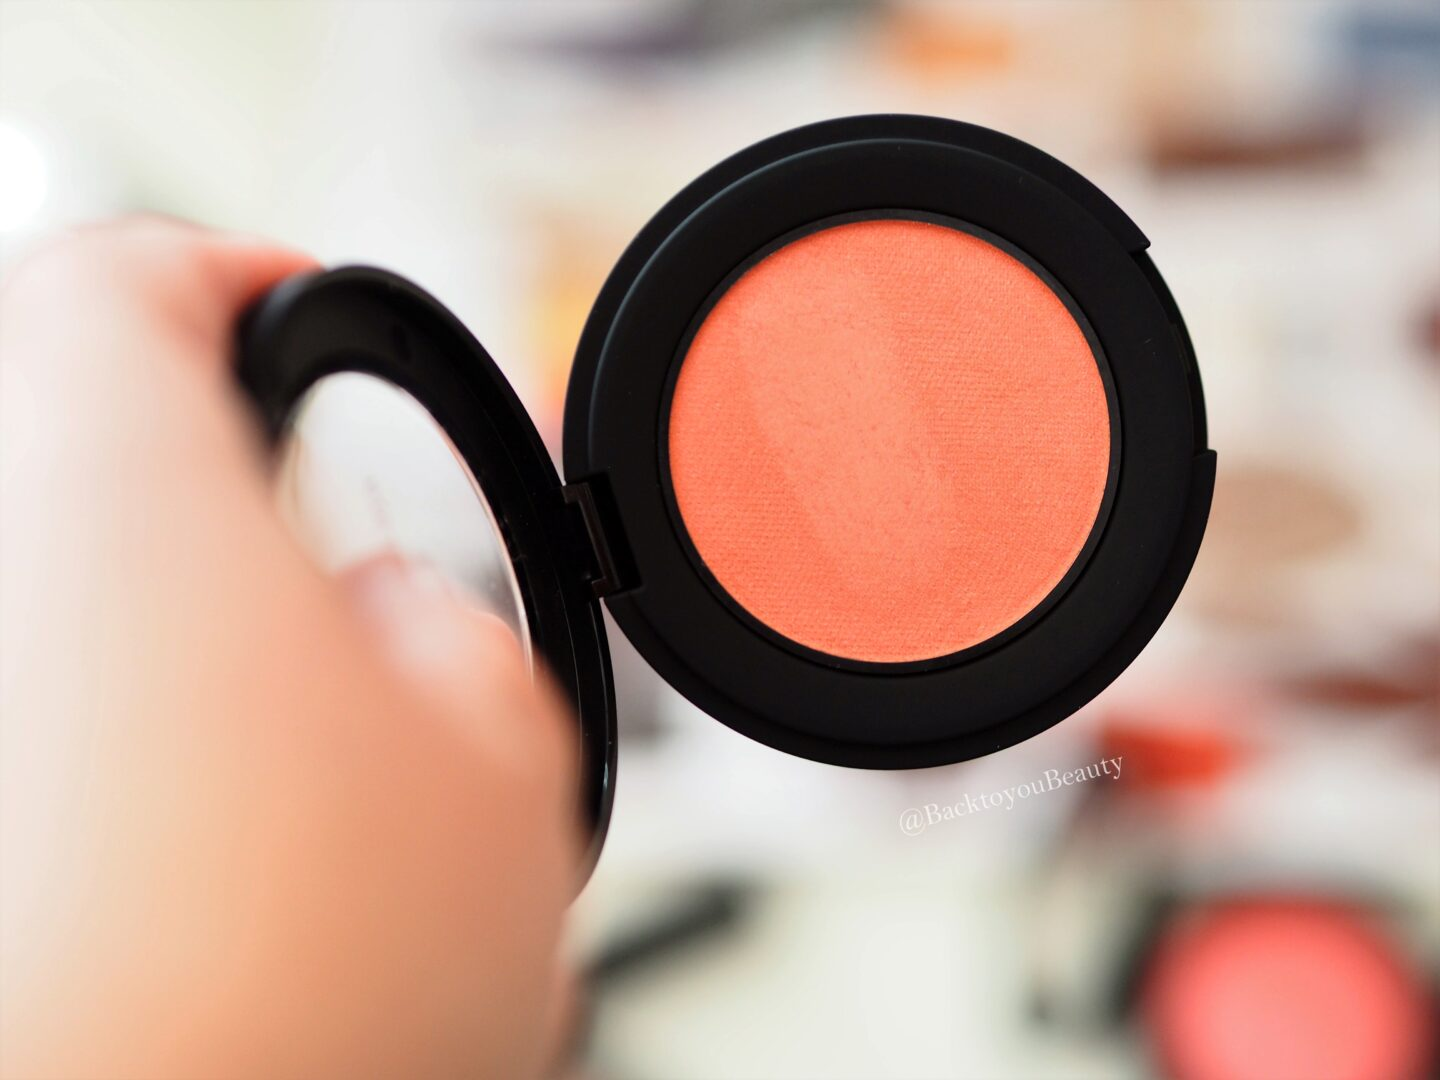 Bareminerals Bounce and blur Coral Cloud